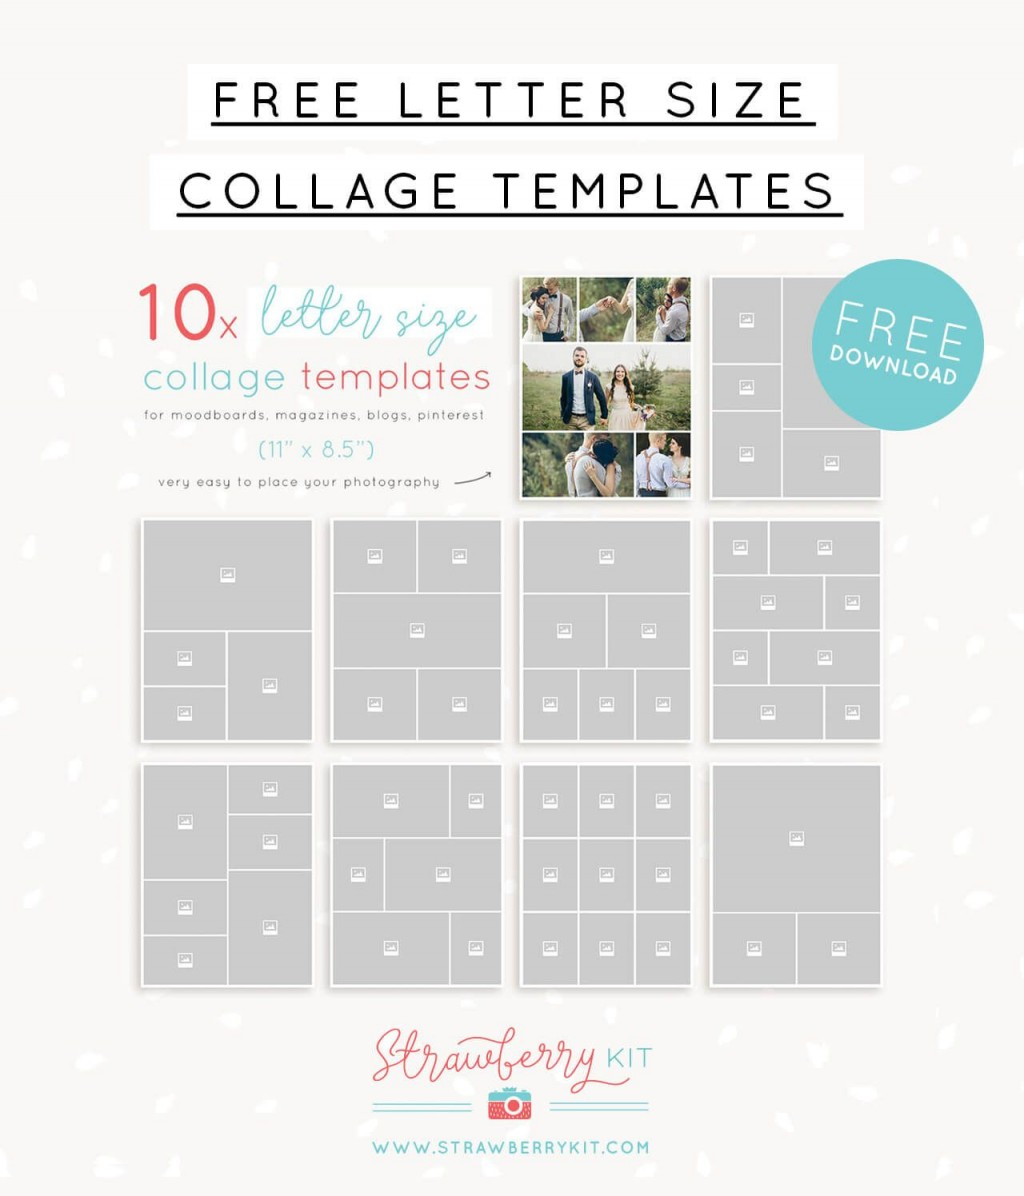 003 Impressive Free Photo Collage Template No Download Example Large